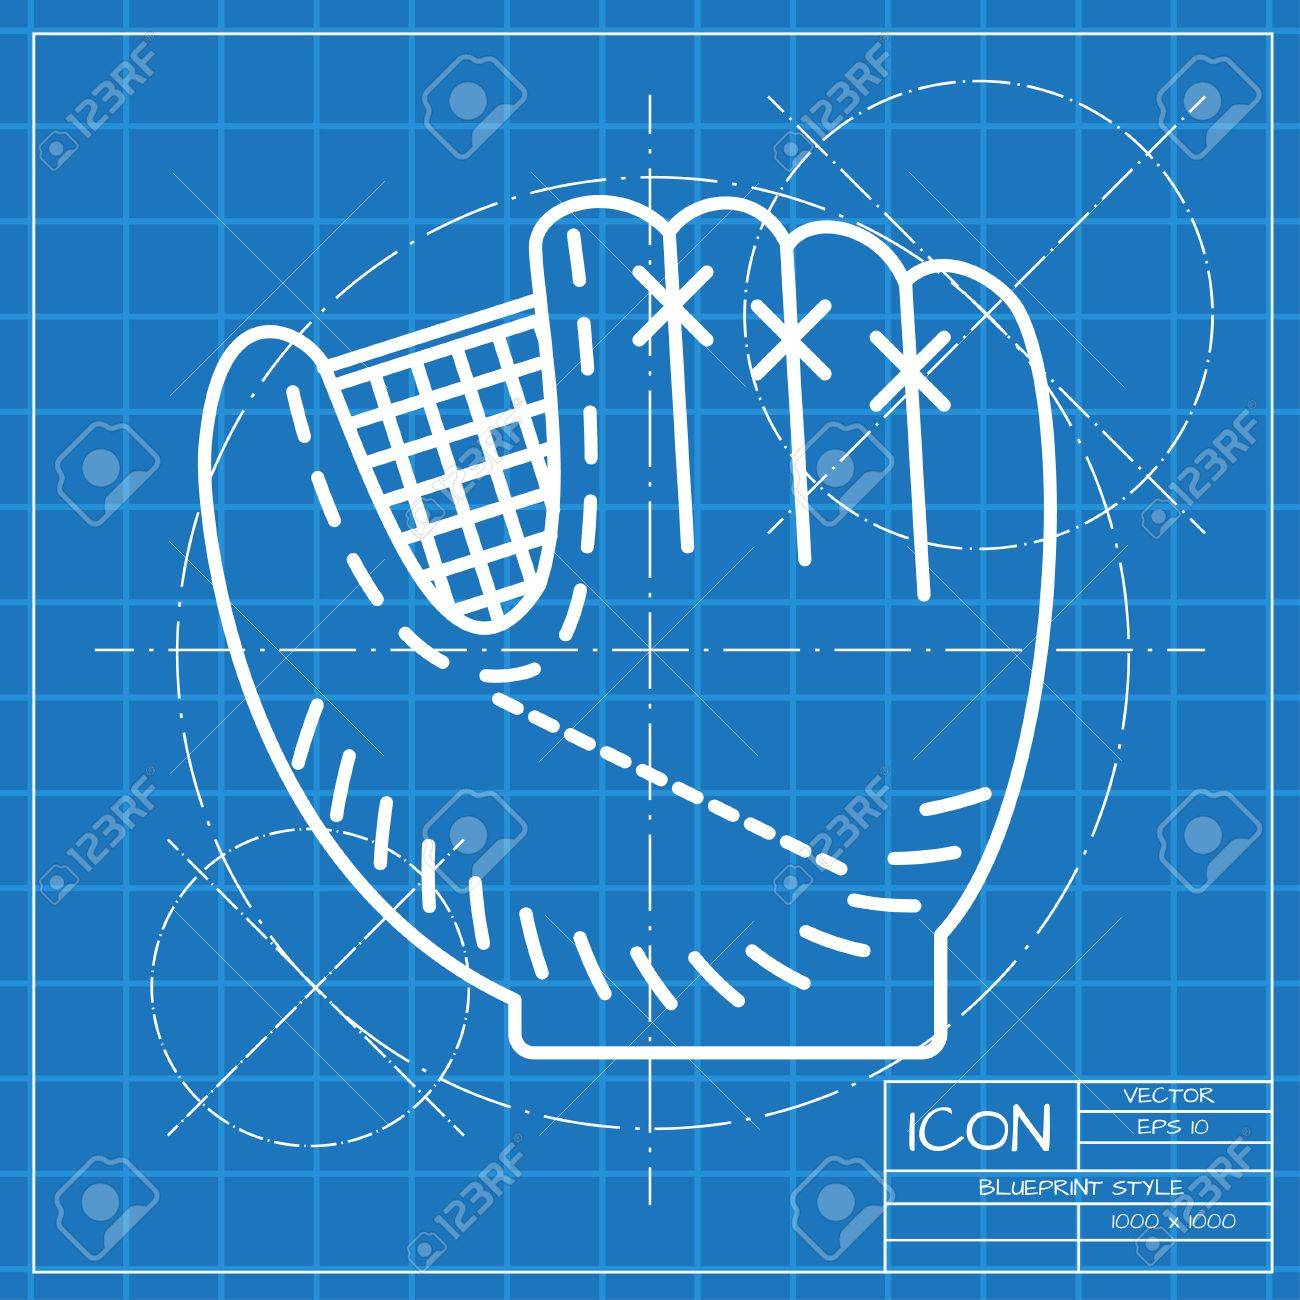 Vector classic blueprint of baseball glove icon on engineer and vector classic blueprint of baseball glove icon on engineer and architect background stock vector 48356716 malvernweather Image collections